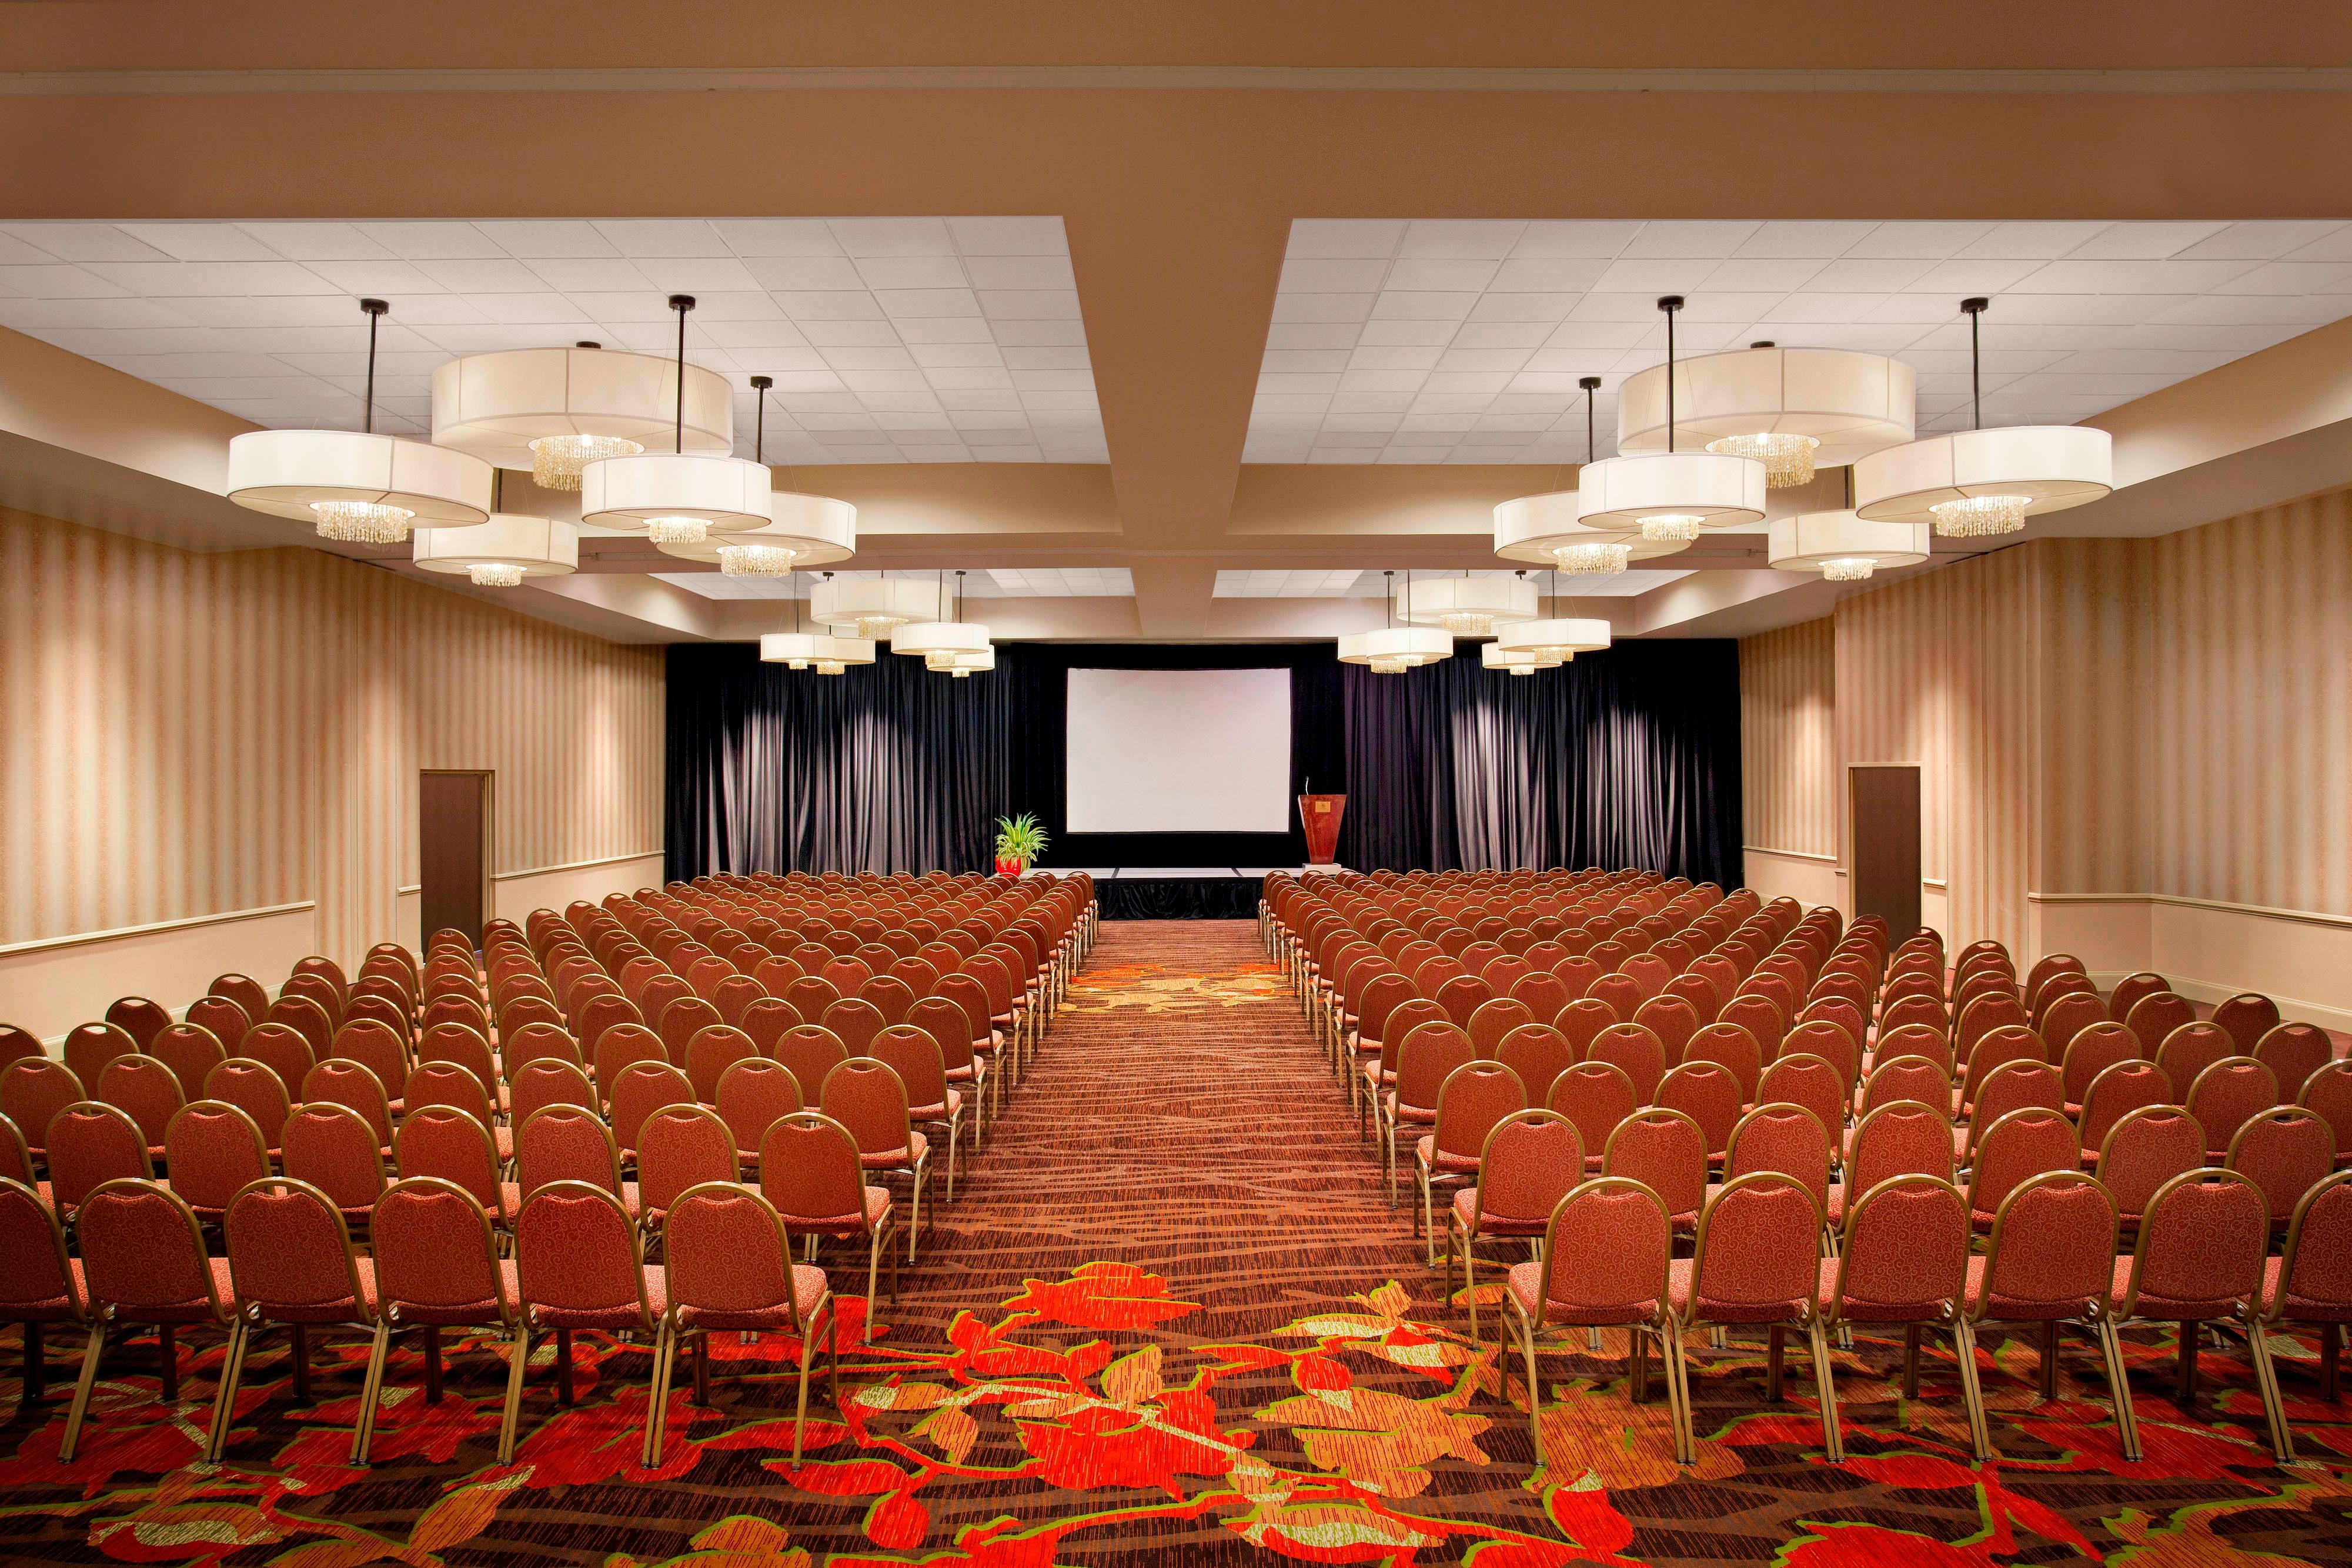 Anasazi Ballroom - Meeting